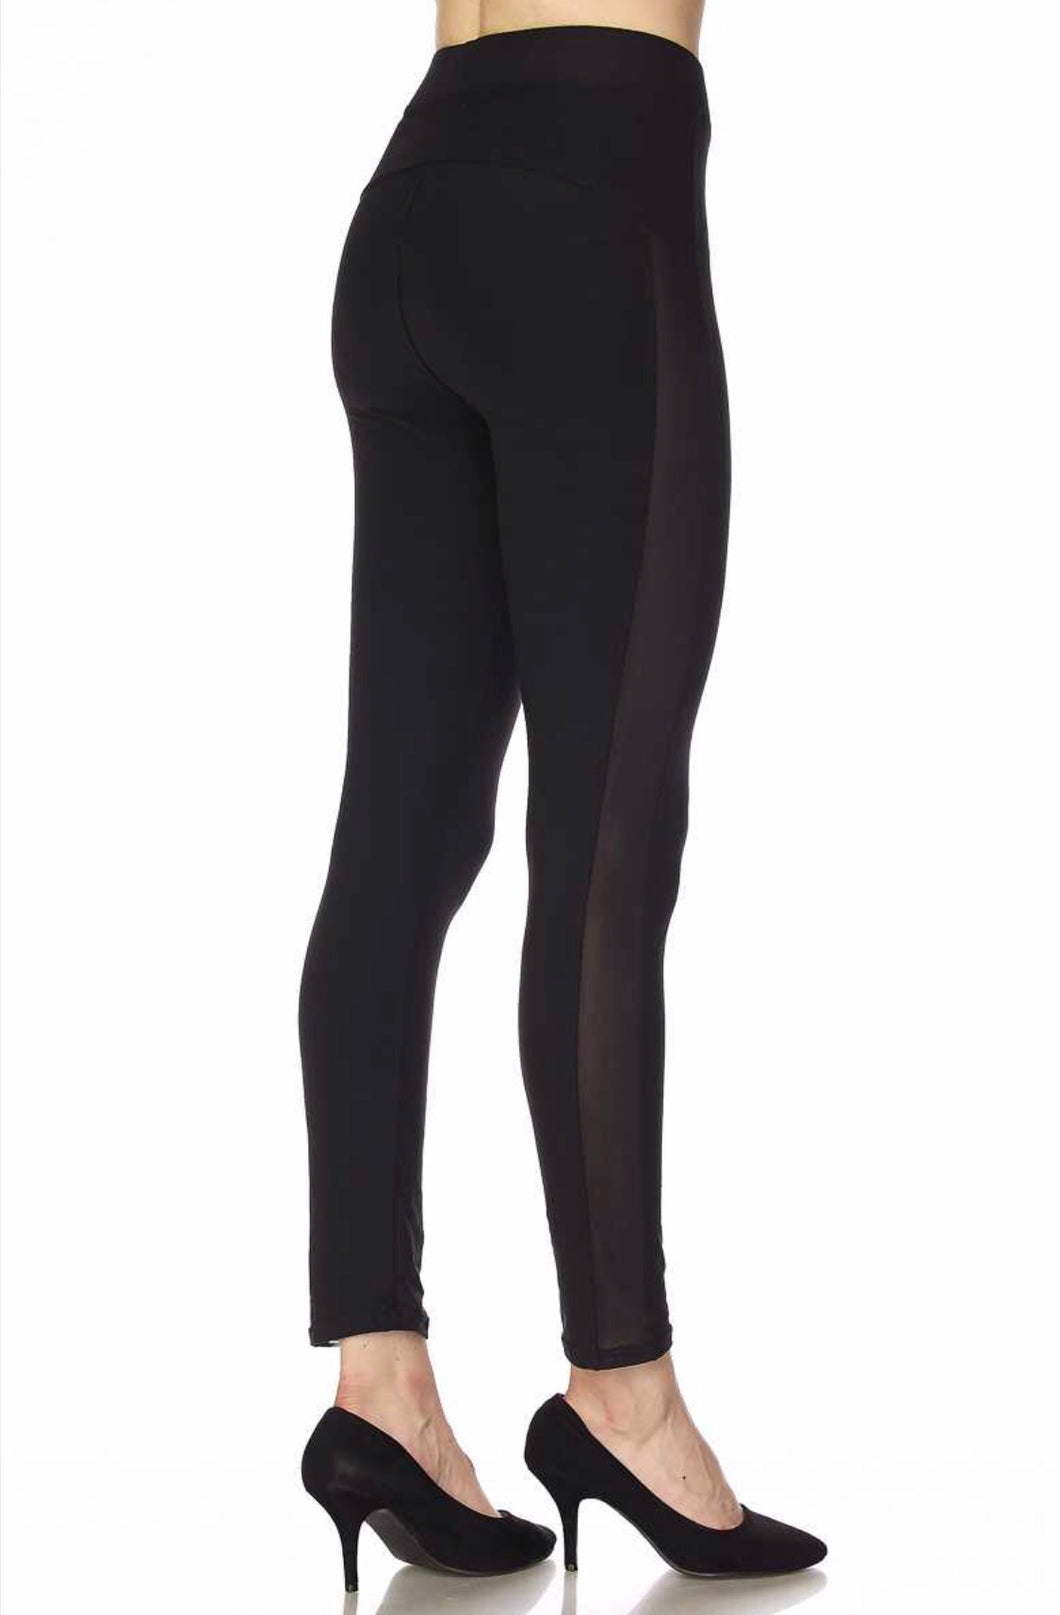 Soft Mesh Side Yoga Leggings